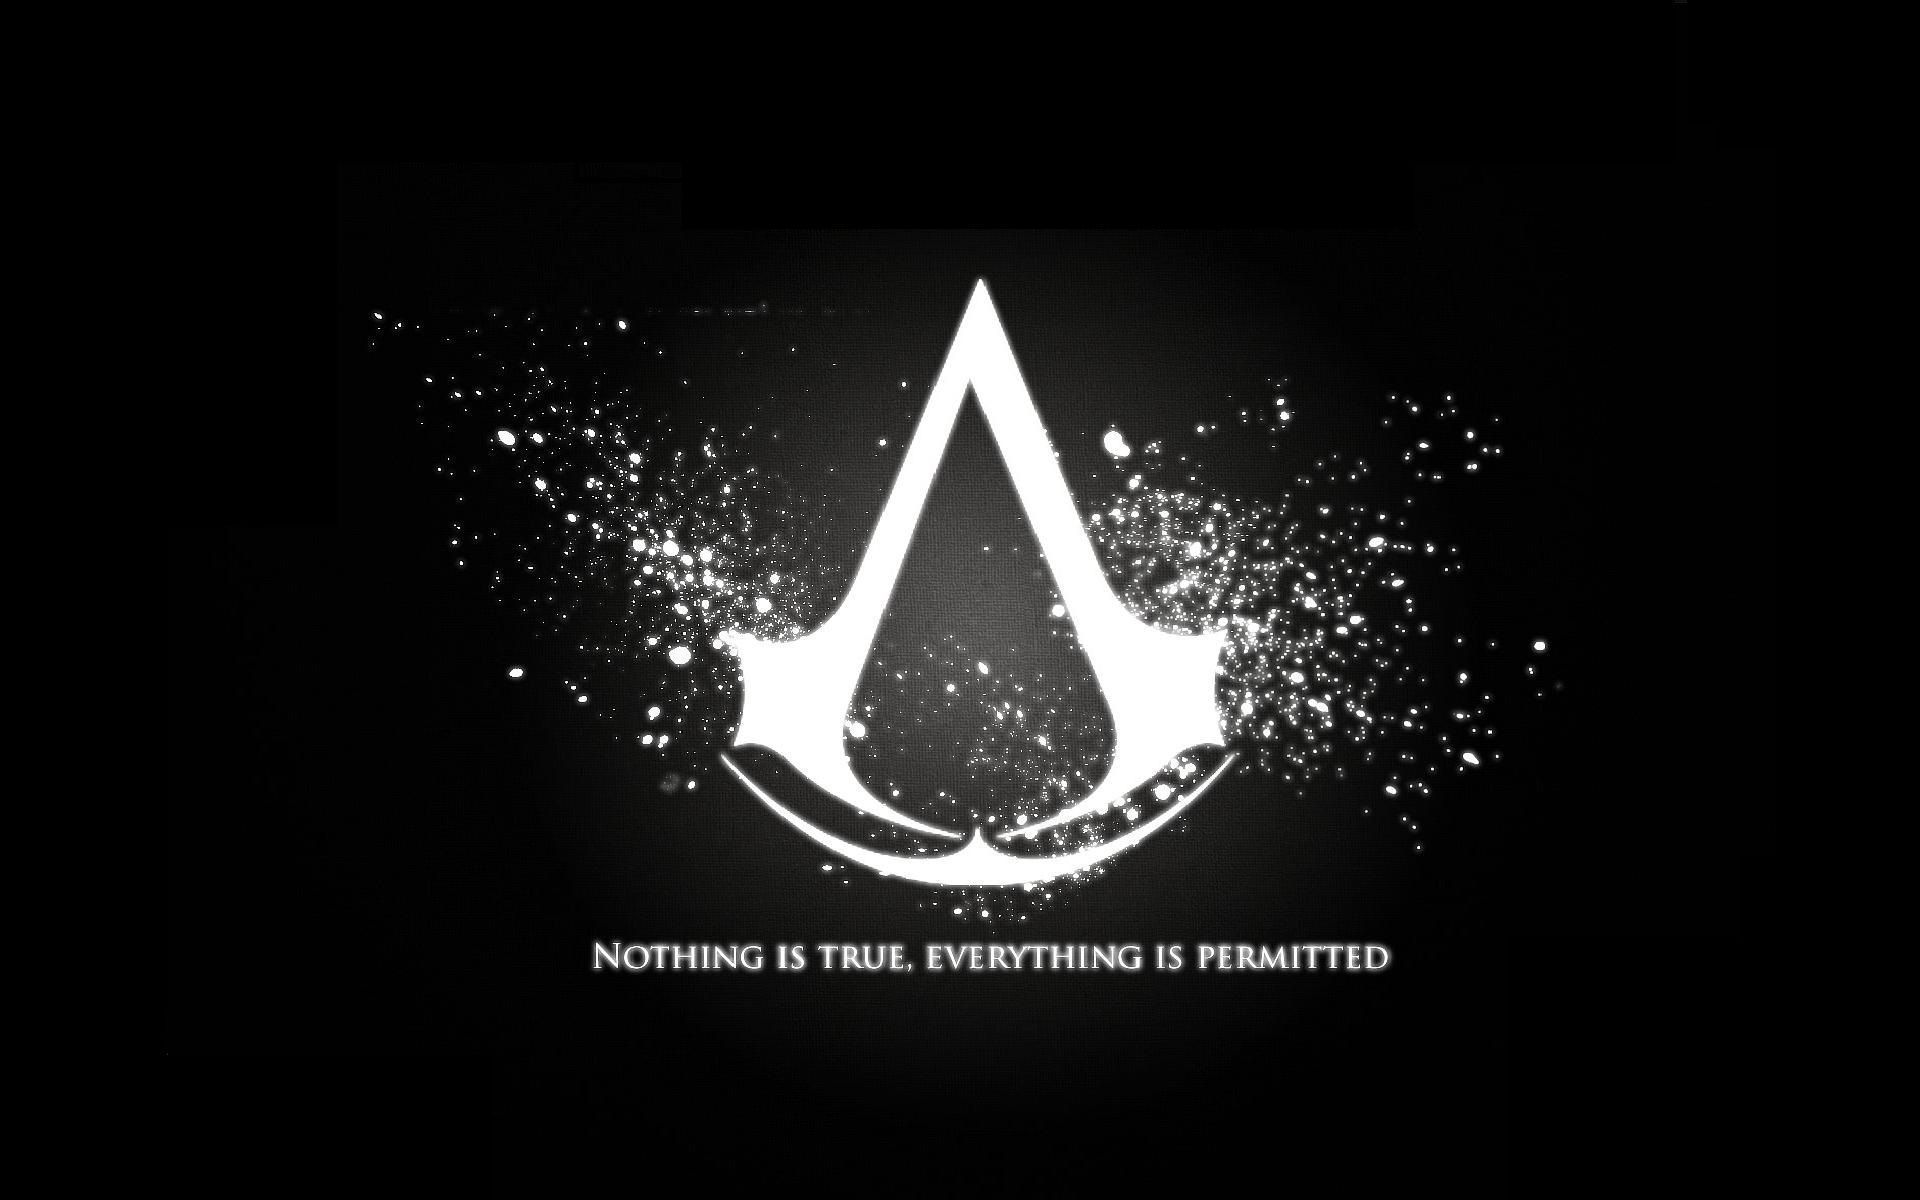 Assassins creed hd wallpapers wallpaper 19201080 assassin creed assassins creed hd wallpapers wallpaper 19201080 assassin creed wallpaper 28 wallpapers voltagebd Image collections